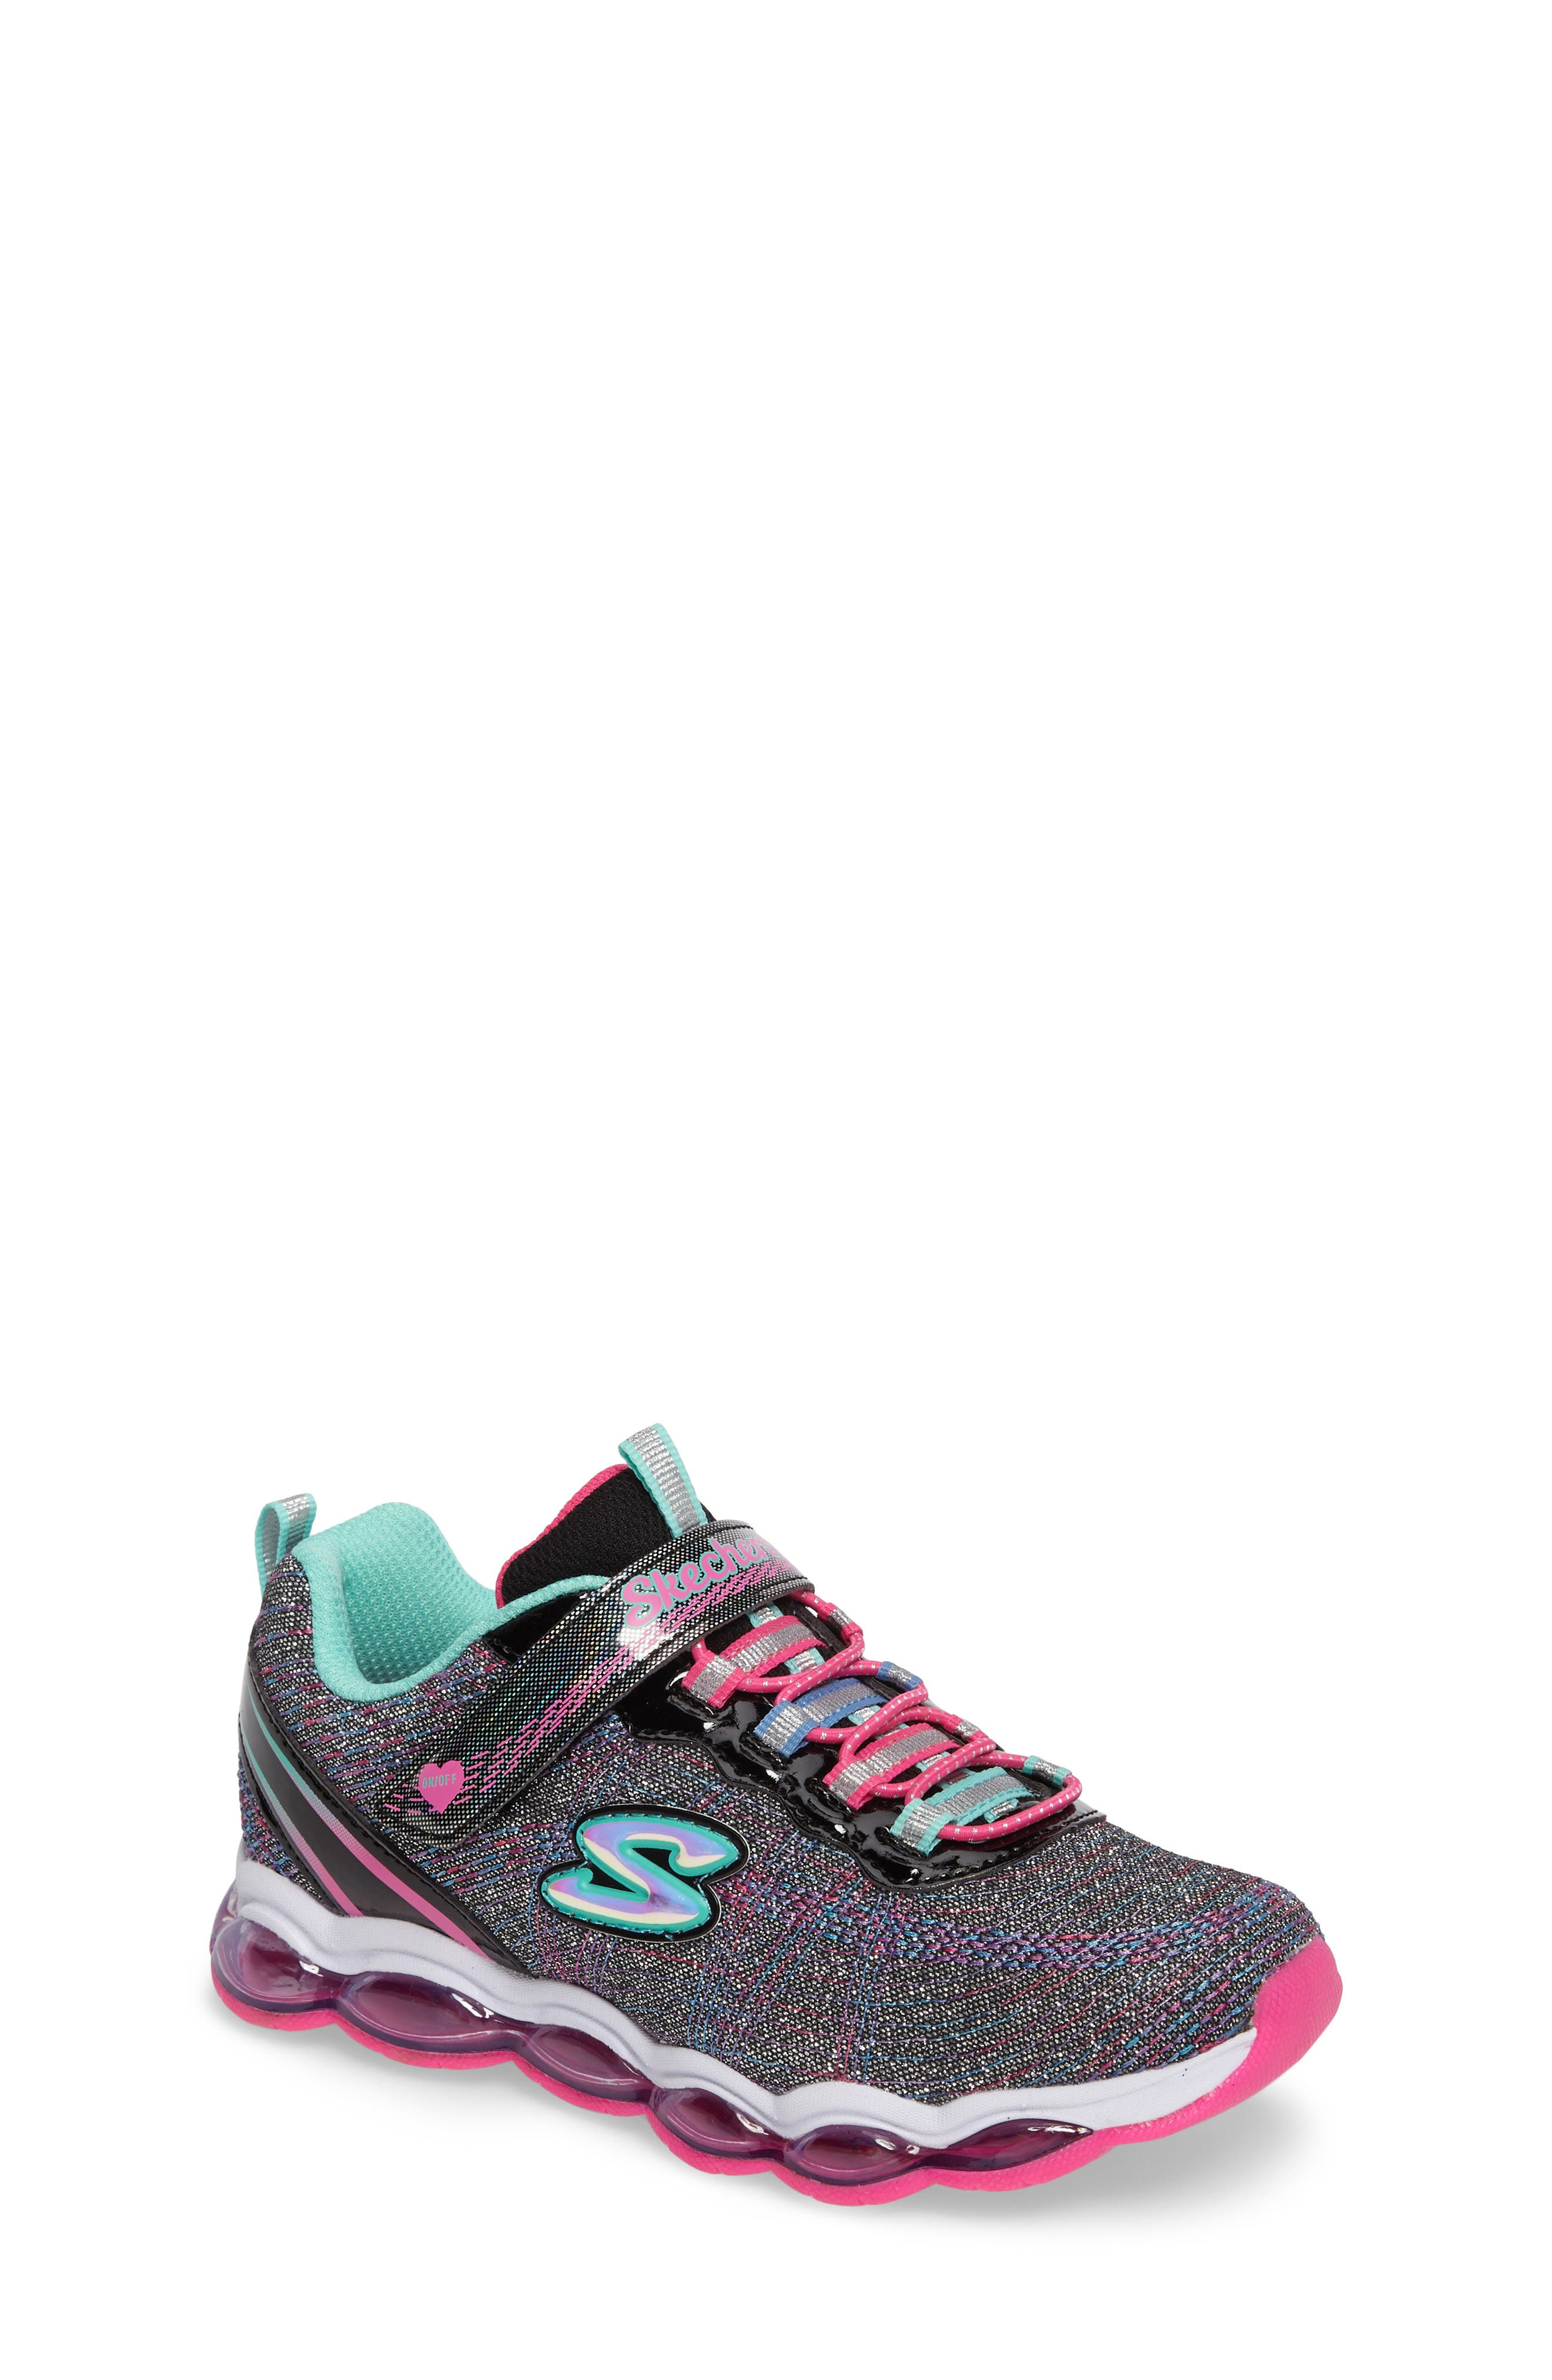 Glimmer Lights Sneakers,                             Main thumbnail 1, color,                             001